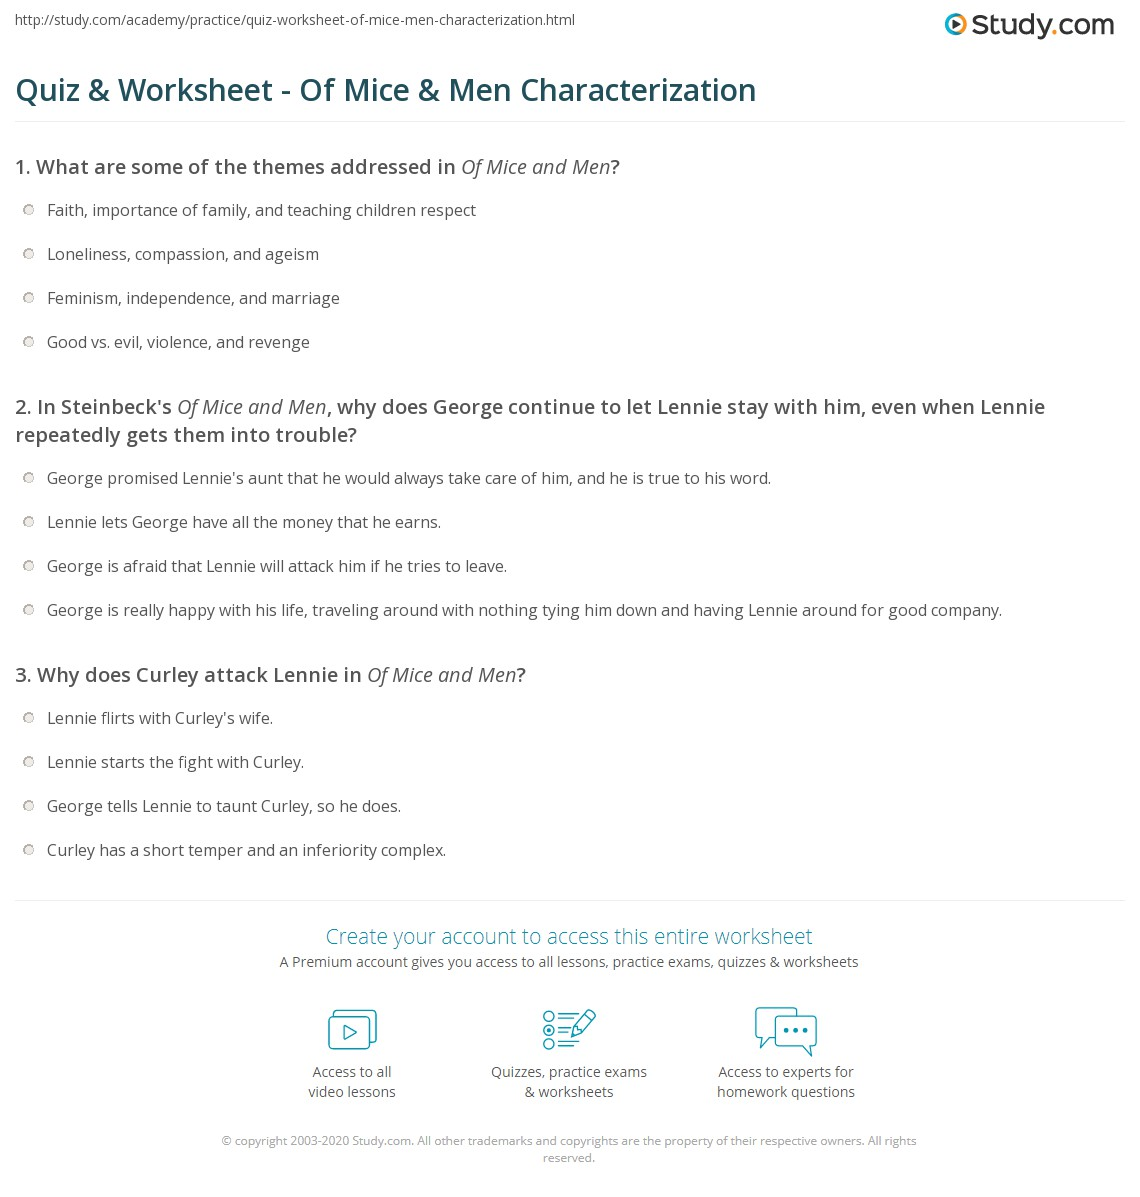 Worksheets Of Mice And Men Worksheet quiz worksheet of mice men characterization study com print in worksheet